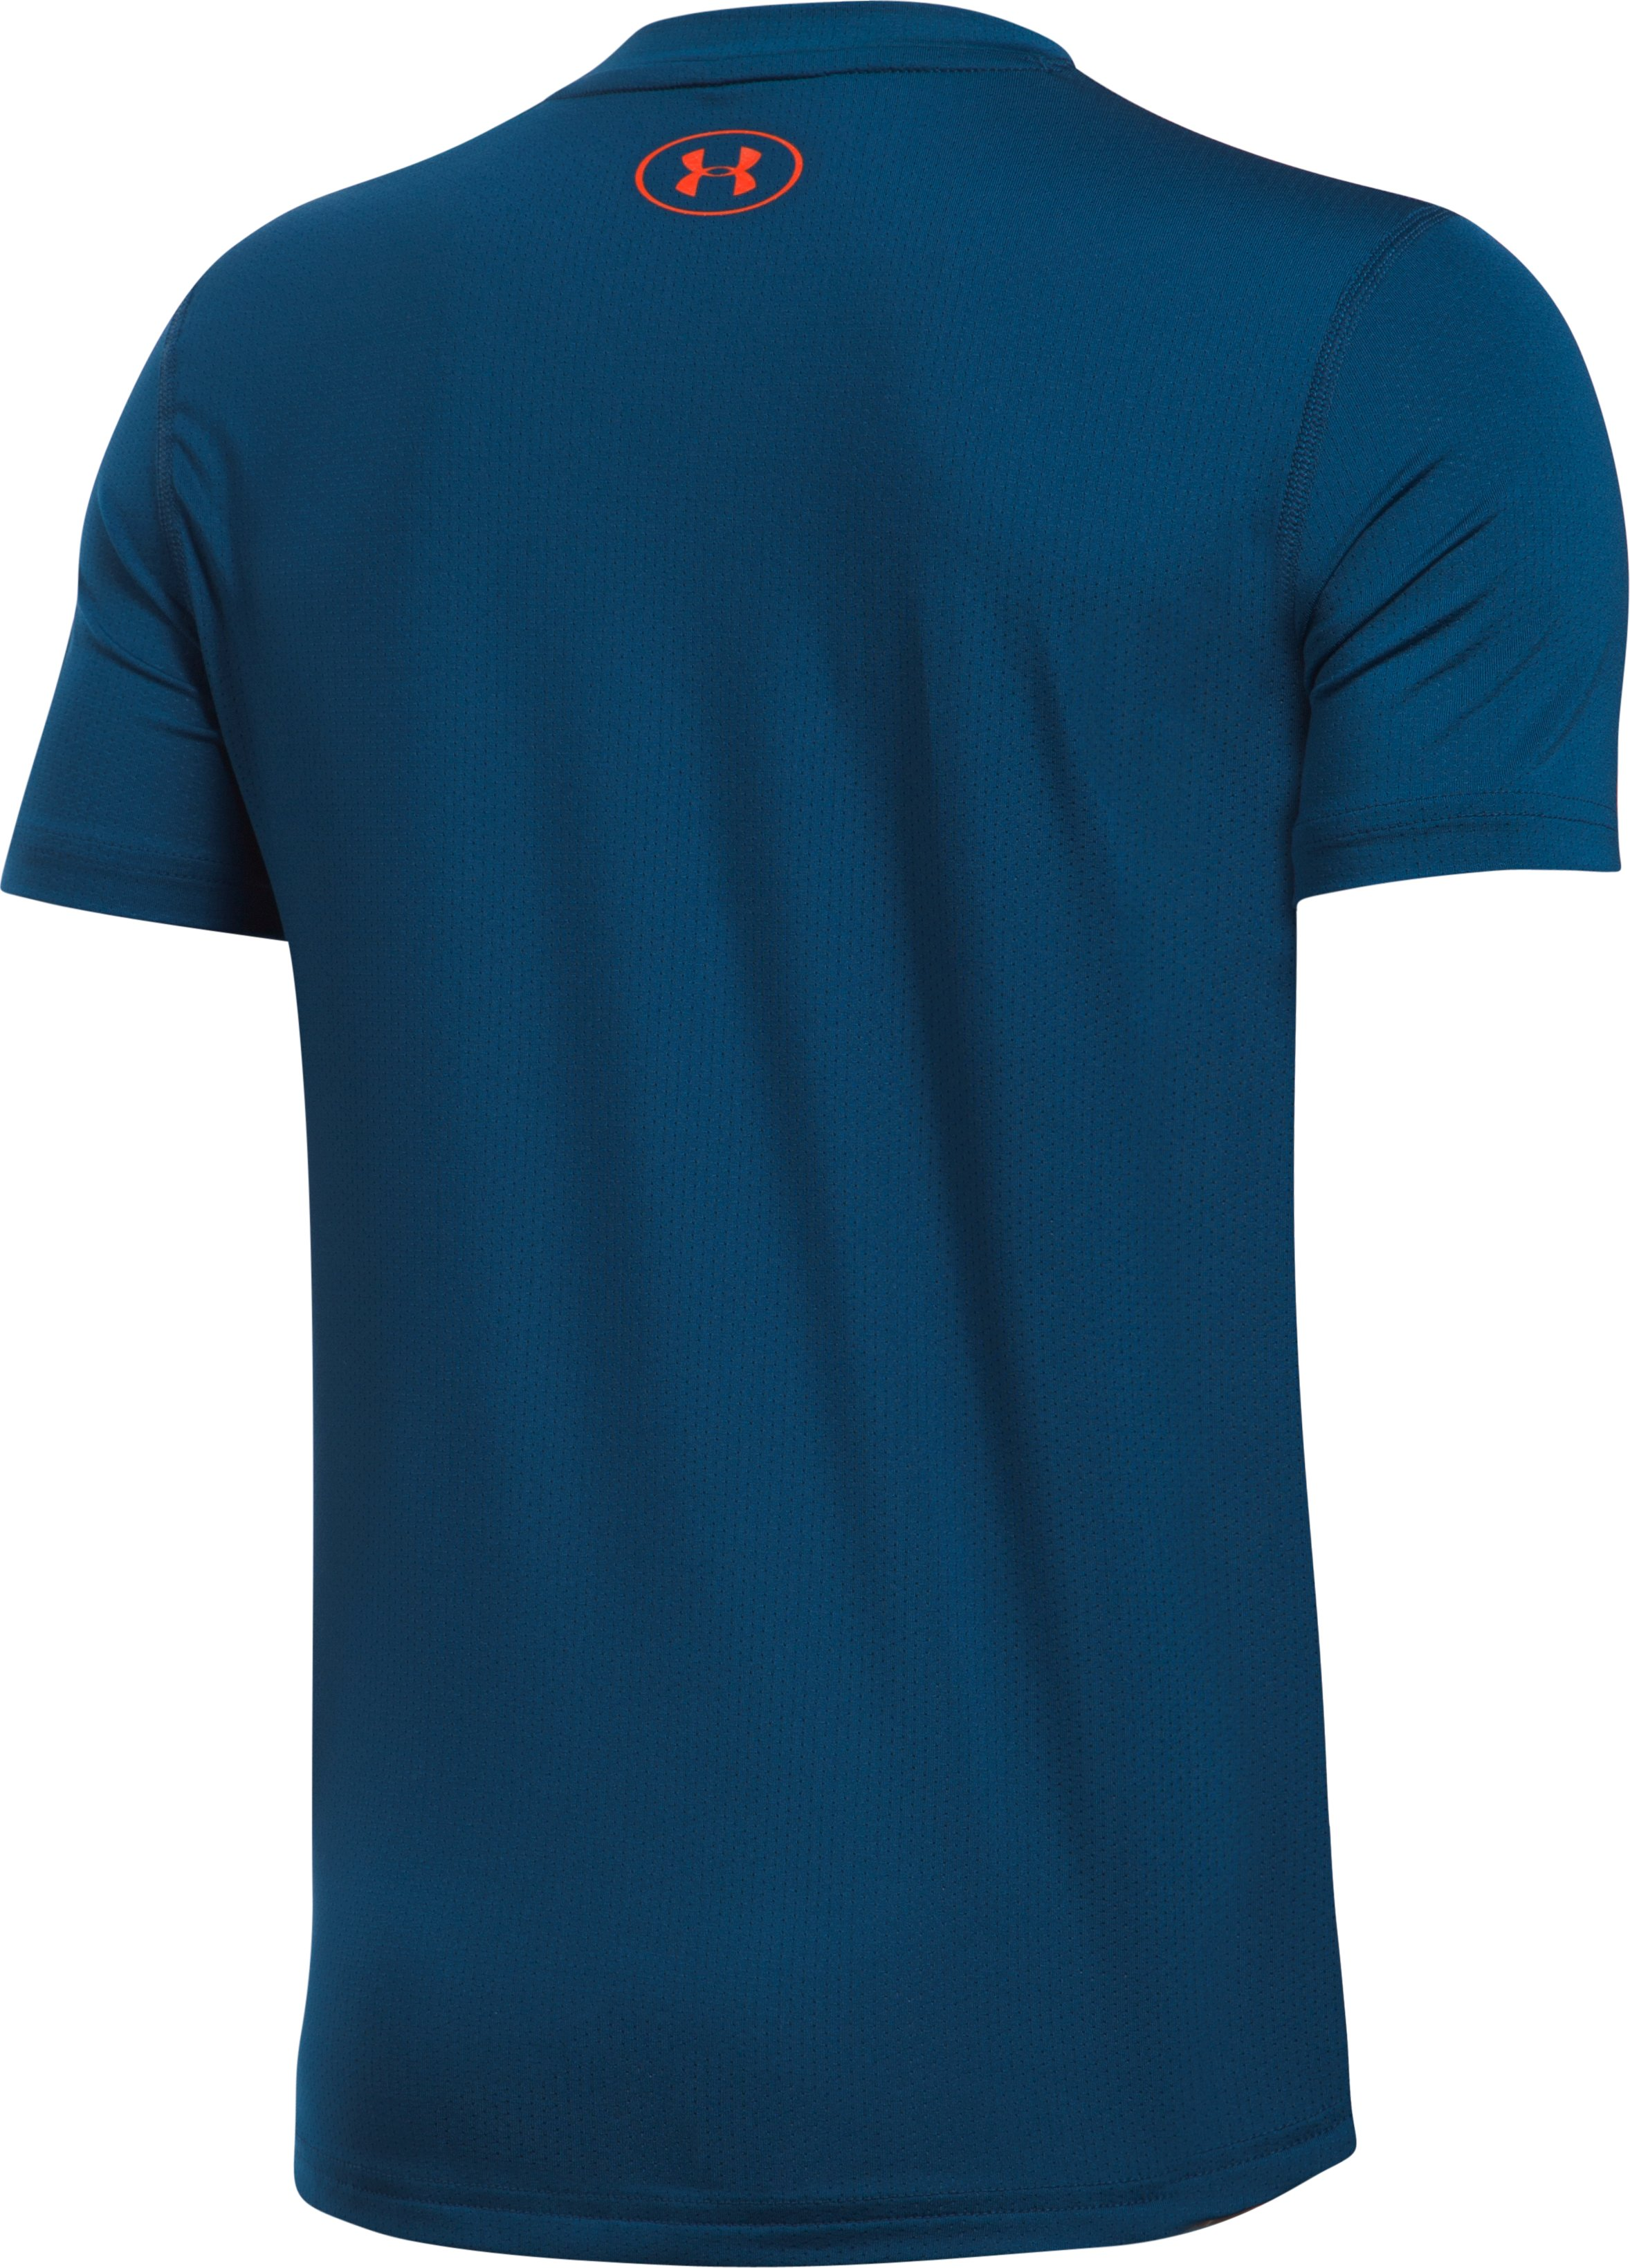 Boys' HeatGear® Training T-Shirt, BLACKOUT NAVY, undefined